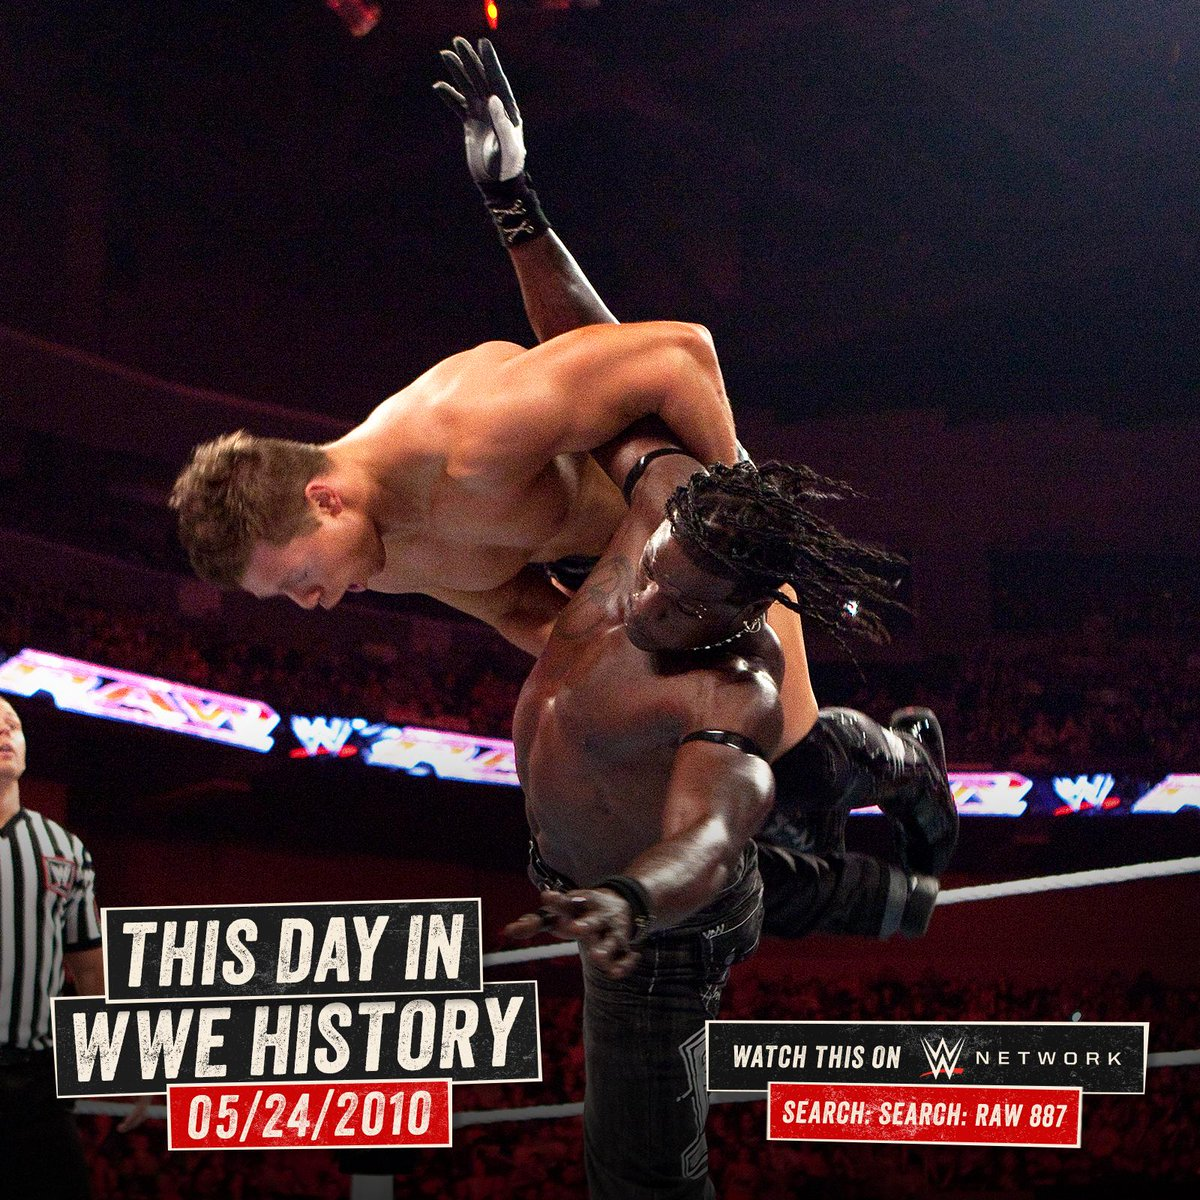 Before they were The #AwesomeTruth, @RonKillings and @mikethemiz did battle for the vacant #USTitle on this day in 2010! http://wwe.me/llzxlc